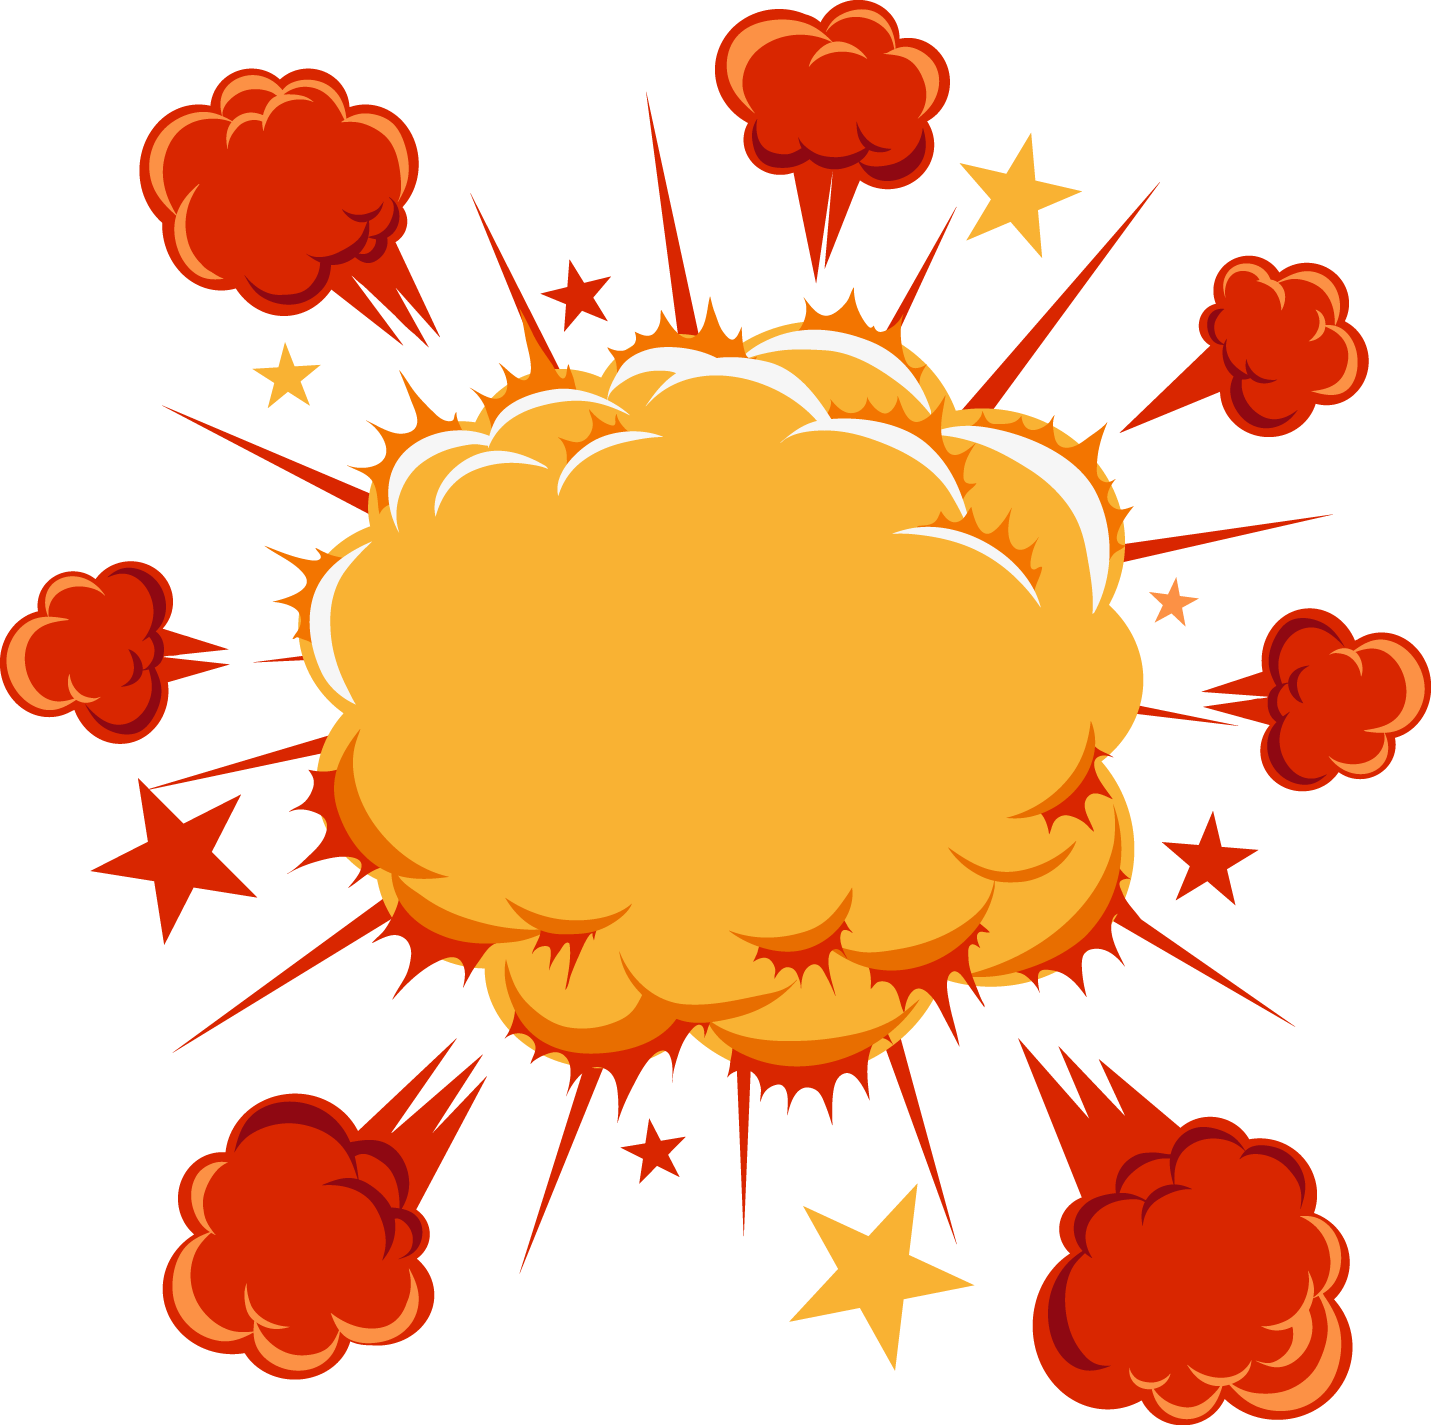 Clipart cloud comic book. Cartoon comics explosion labeled